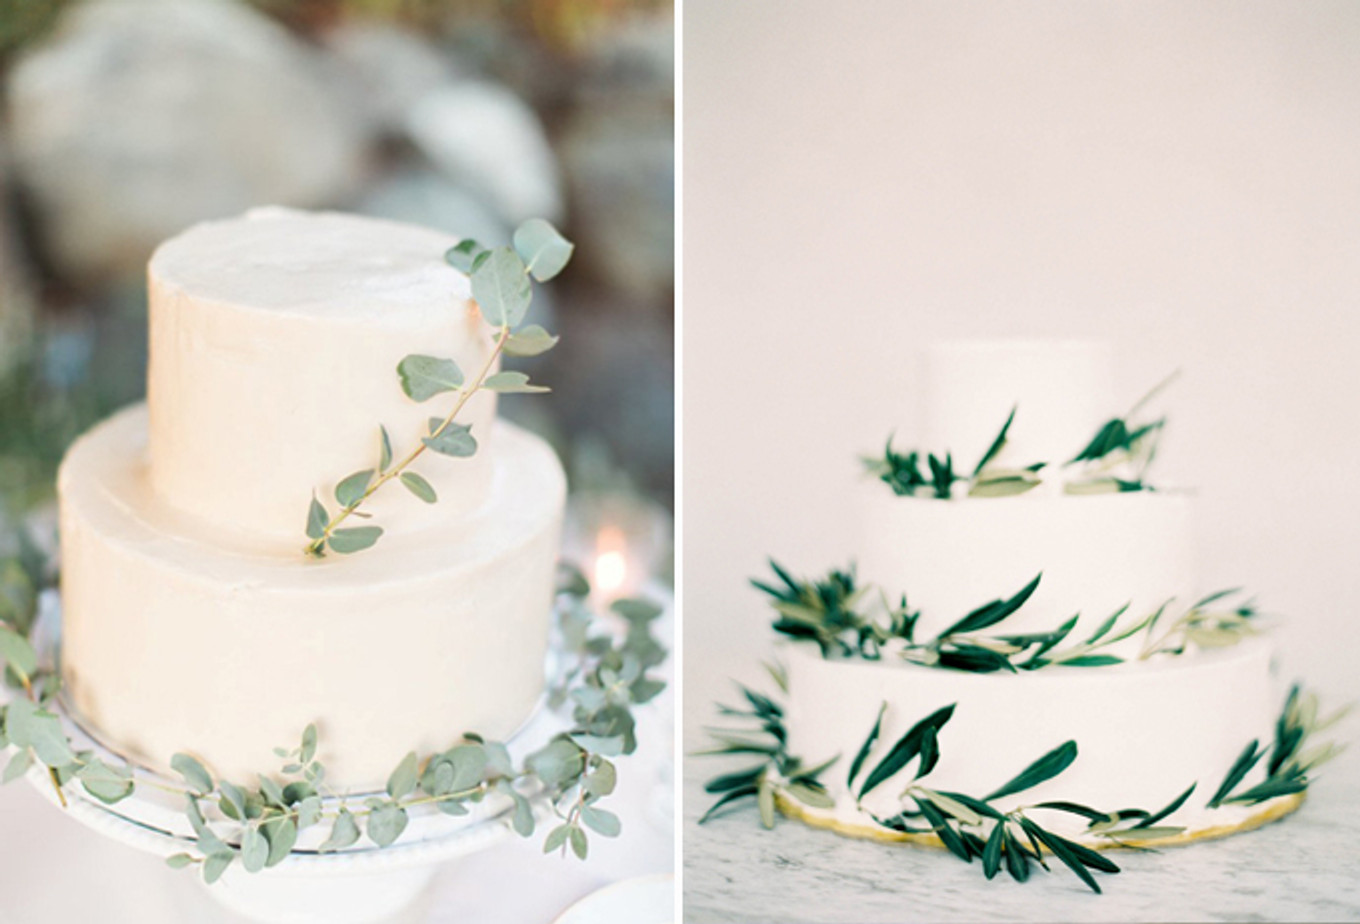 15 Mouthwatering Green Botanical Wedding Cake Ideas - Bridestory Blog